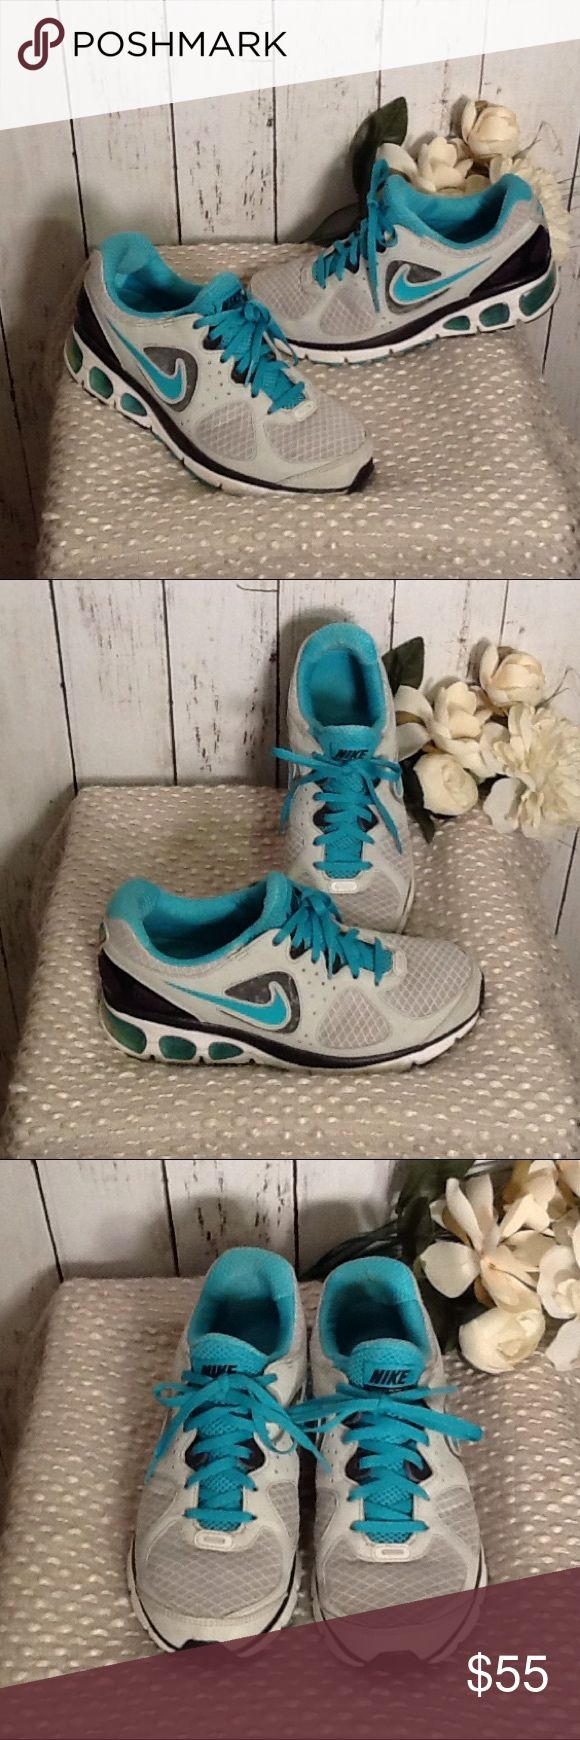 Nike Air Max Athletic Shoes Size 7 Blue Gray Great pair of Nike Air Max ladies running shoes, beautiful color of teal blue, gray and white, nicer in person, retailed new for approx $150, very gently worn condition, plenty of wear left, soles are in good c